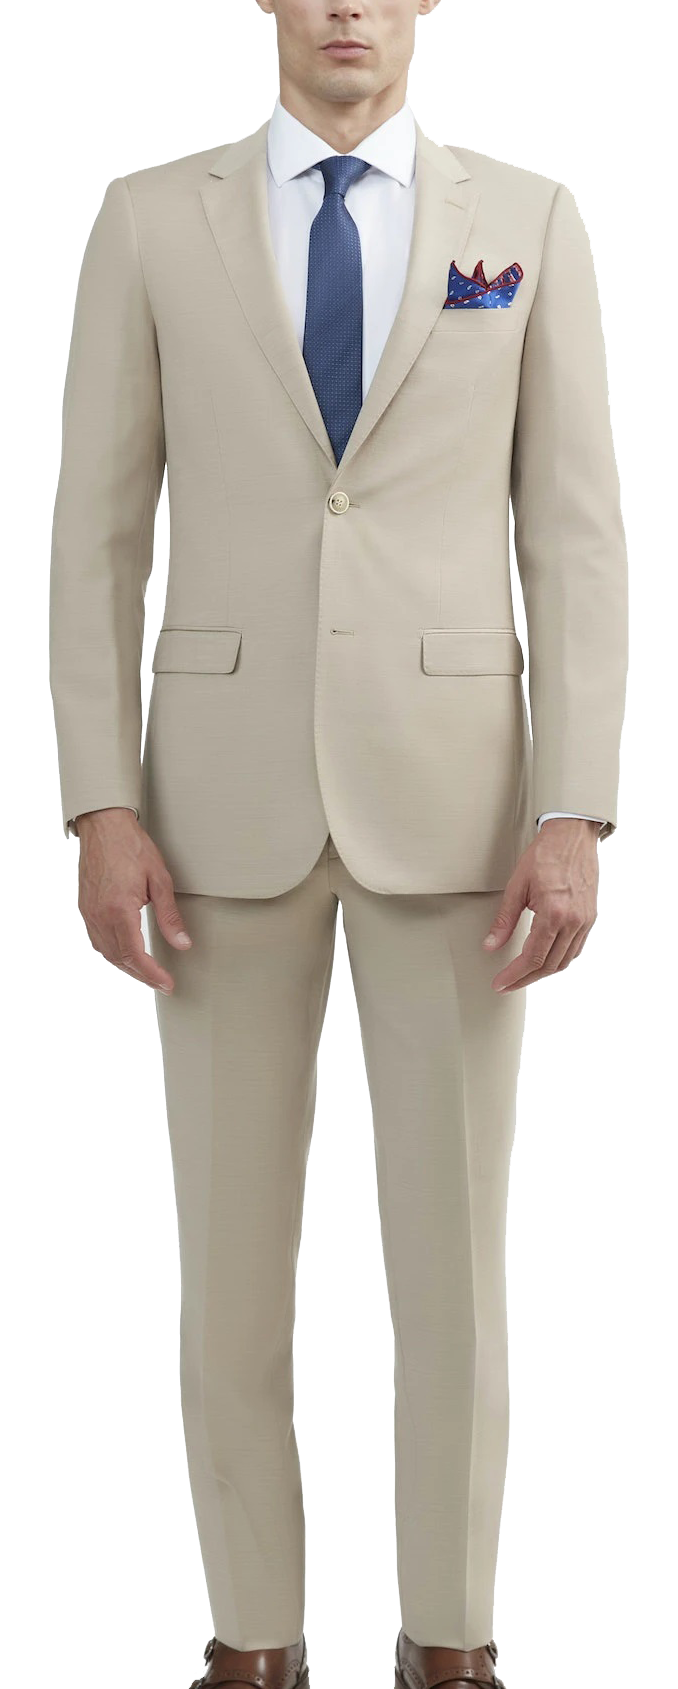 Beige tan suit made of Italian wool by Tomasso Black